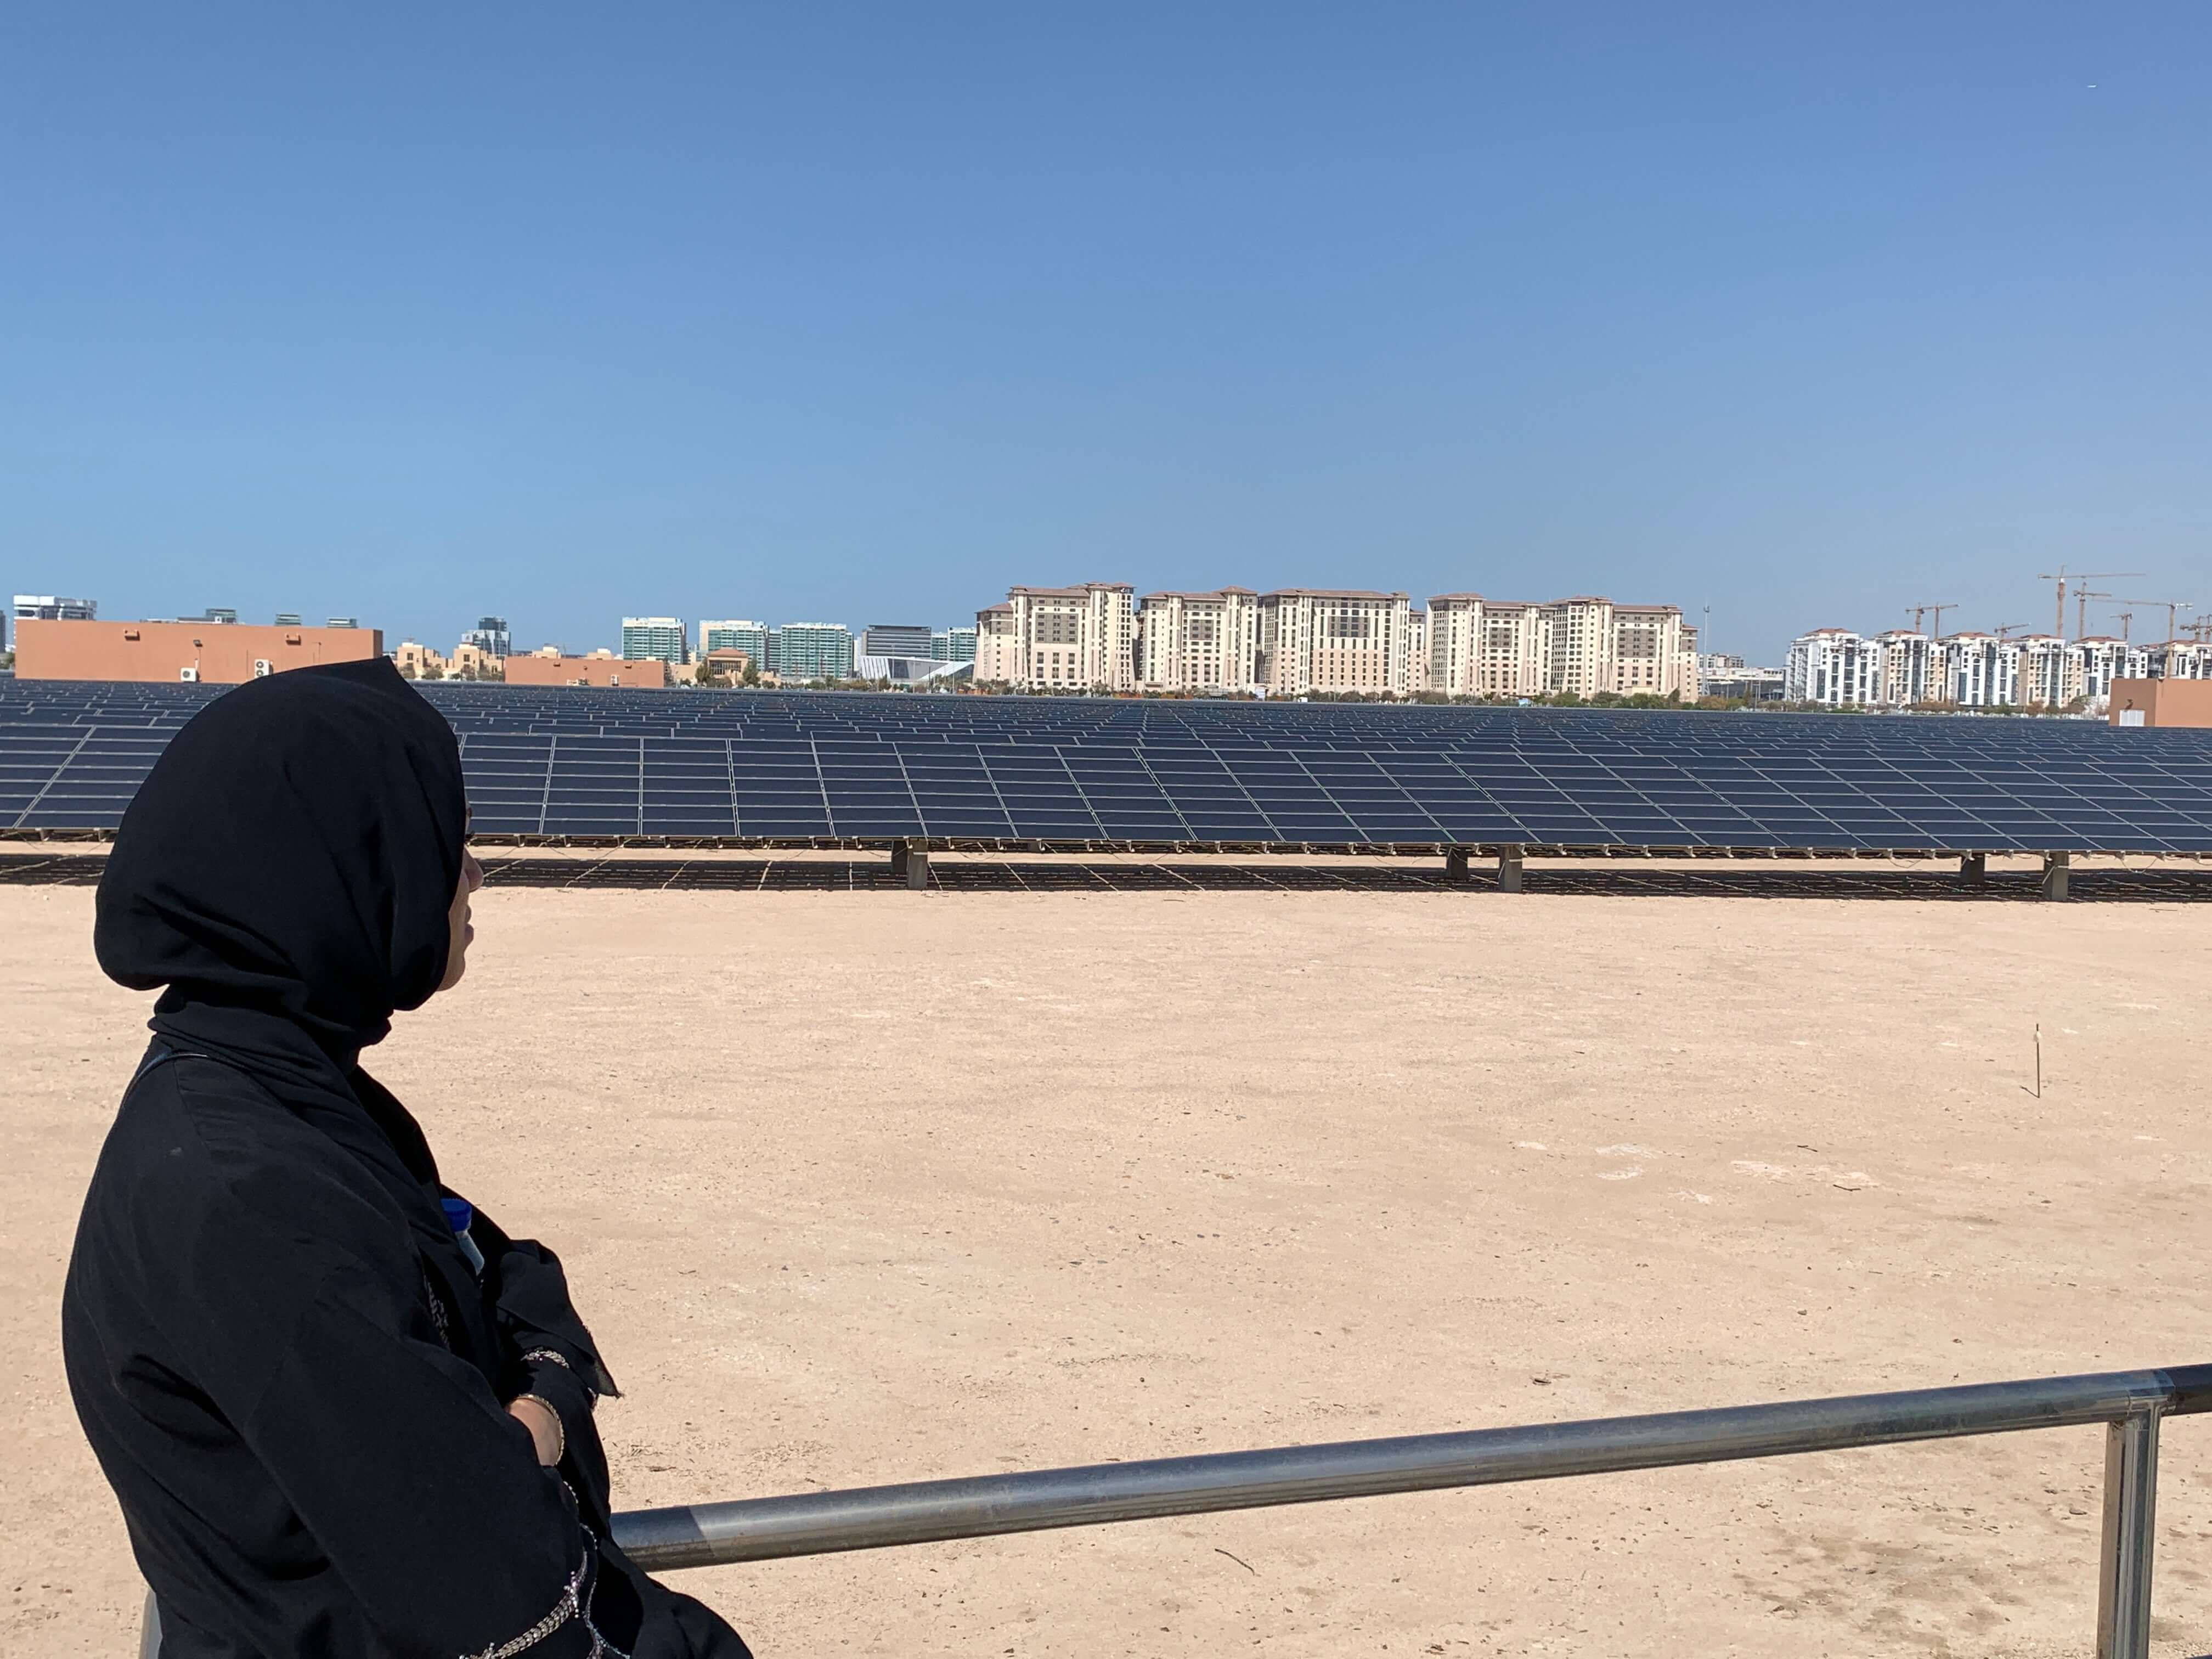 Oil-rich Gulf turns to renewable energy